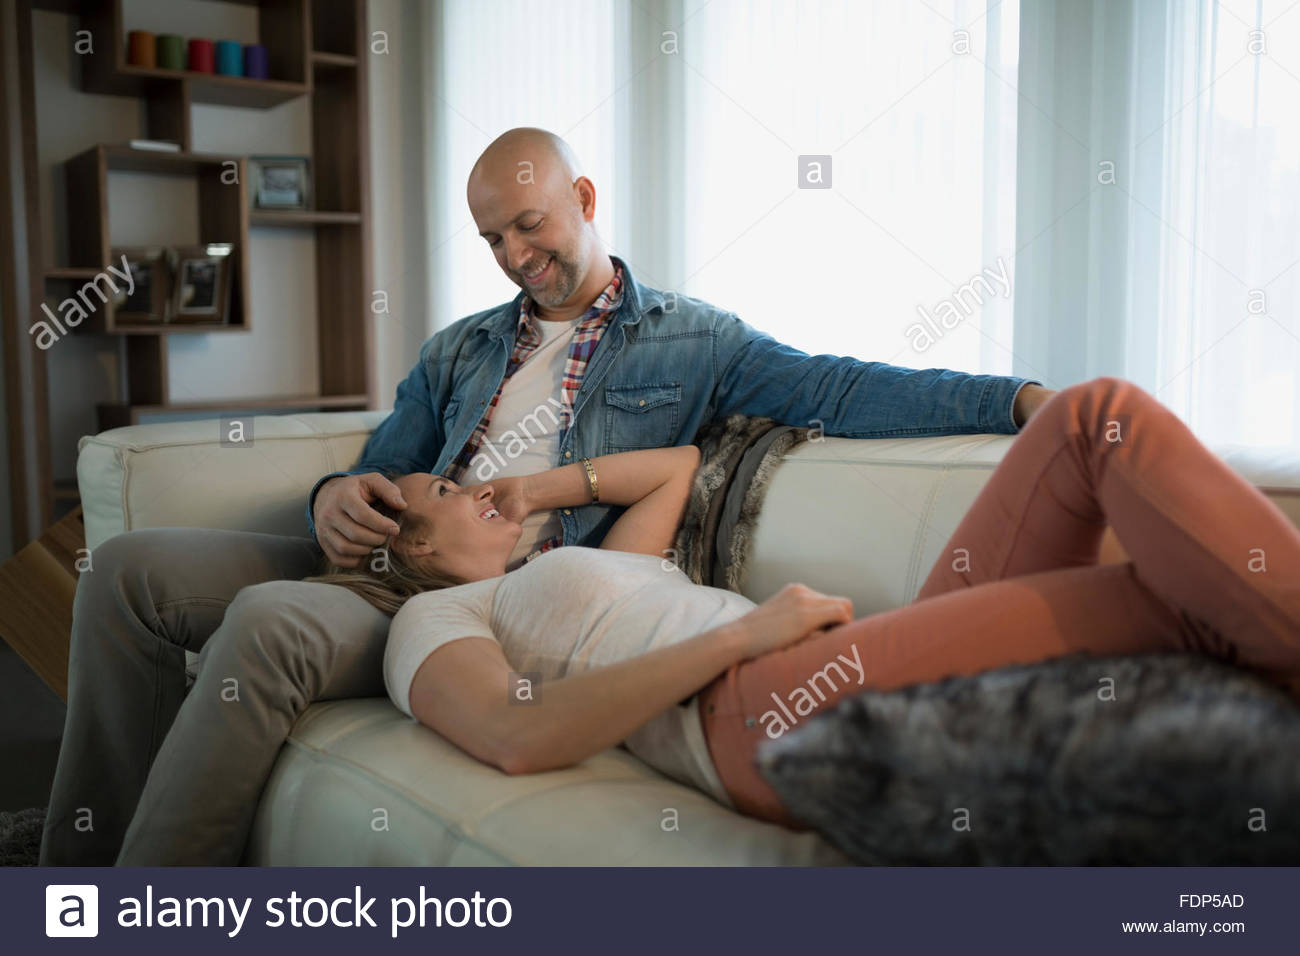 woman laying on husbands lap living room sofa - Stock Image